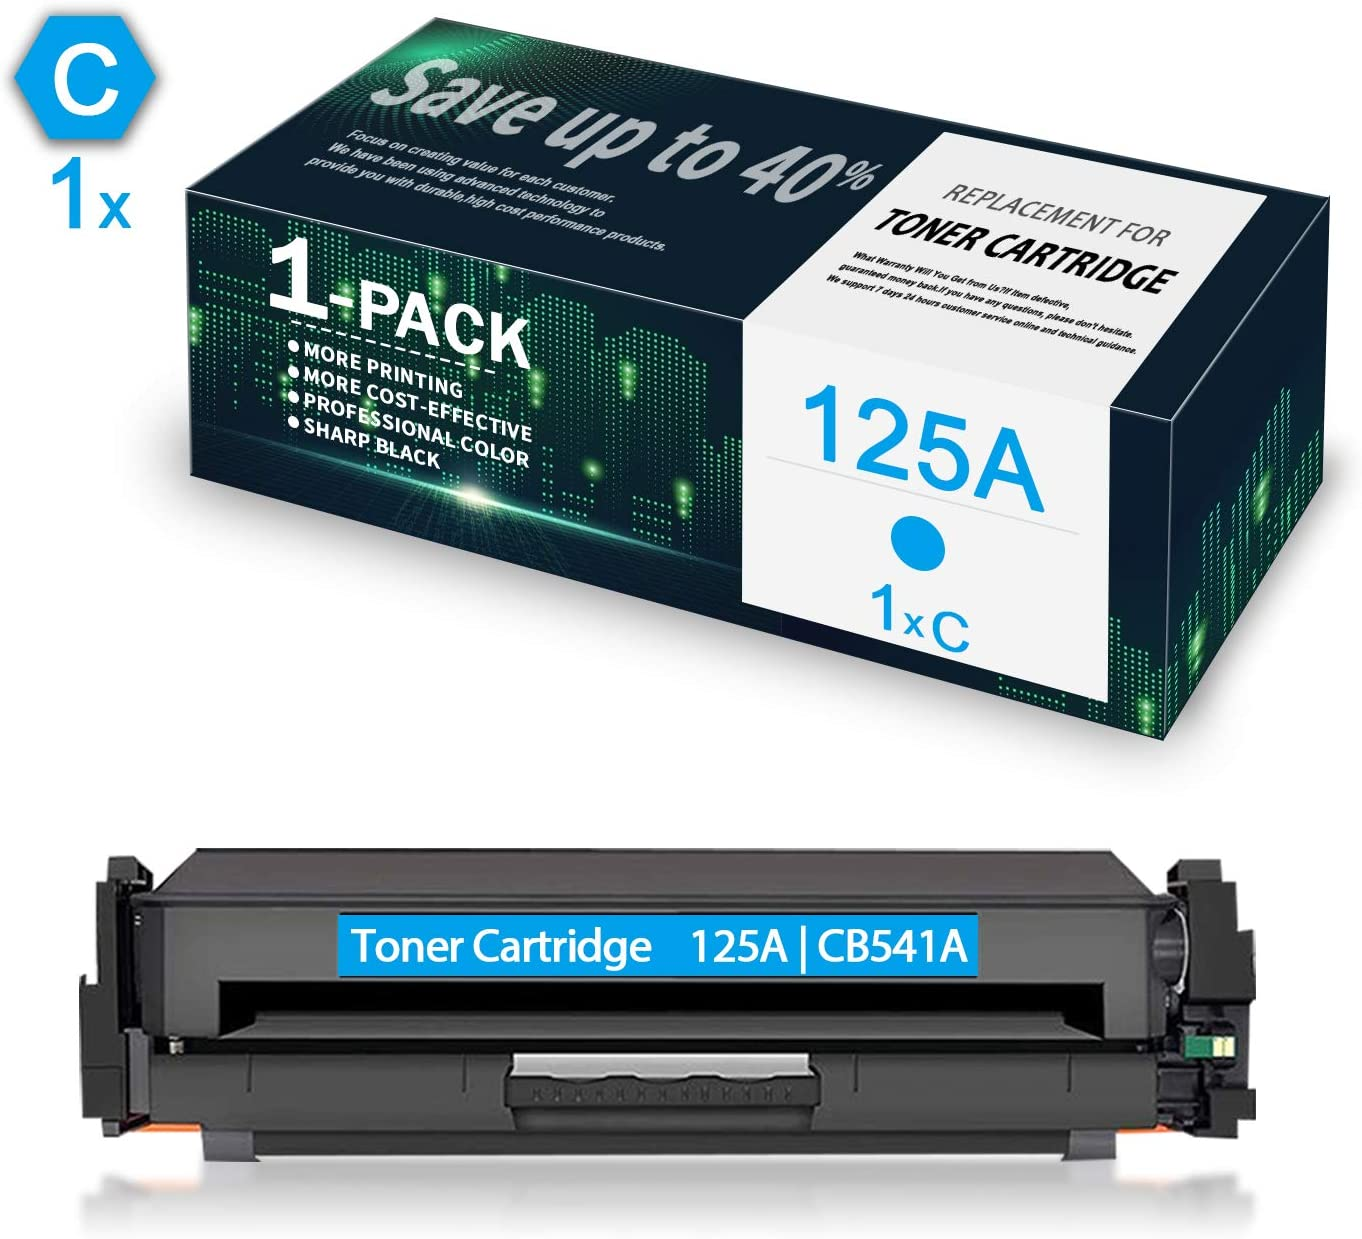 1-Pack Cyan 125A | CB541A Compatible Remanufactured Toner Cartridge Replacement for HP Color Laserjet CP1215 CP1518ni CP1515n CM1312nfi CM1312 Printer, Toner Cartridge.